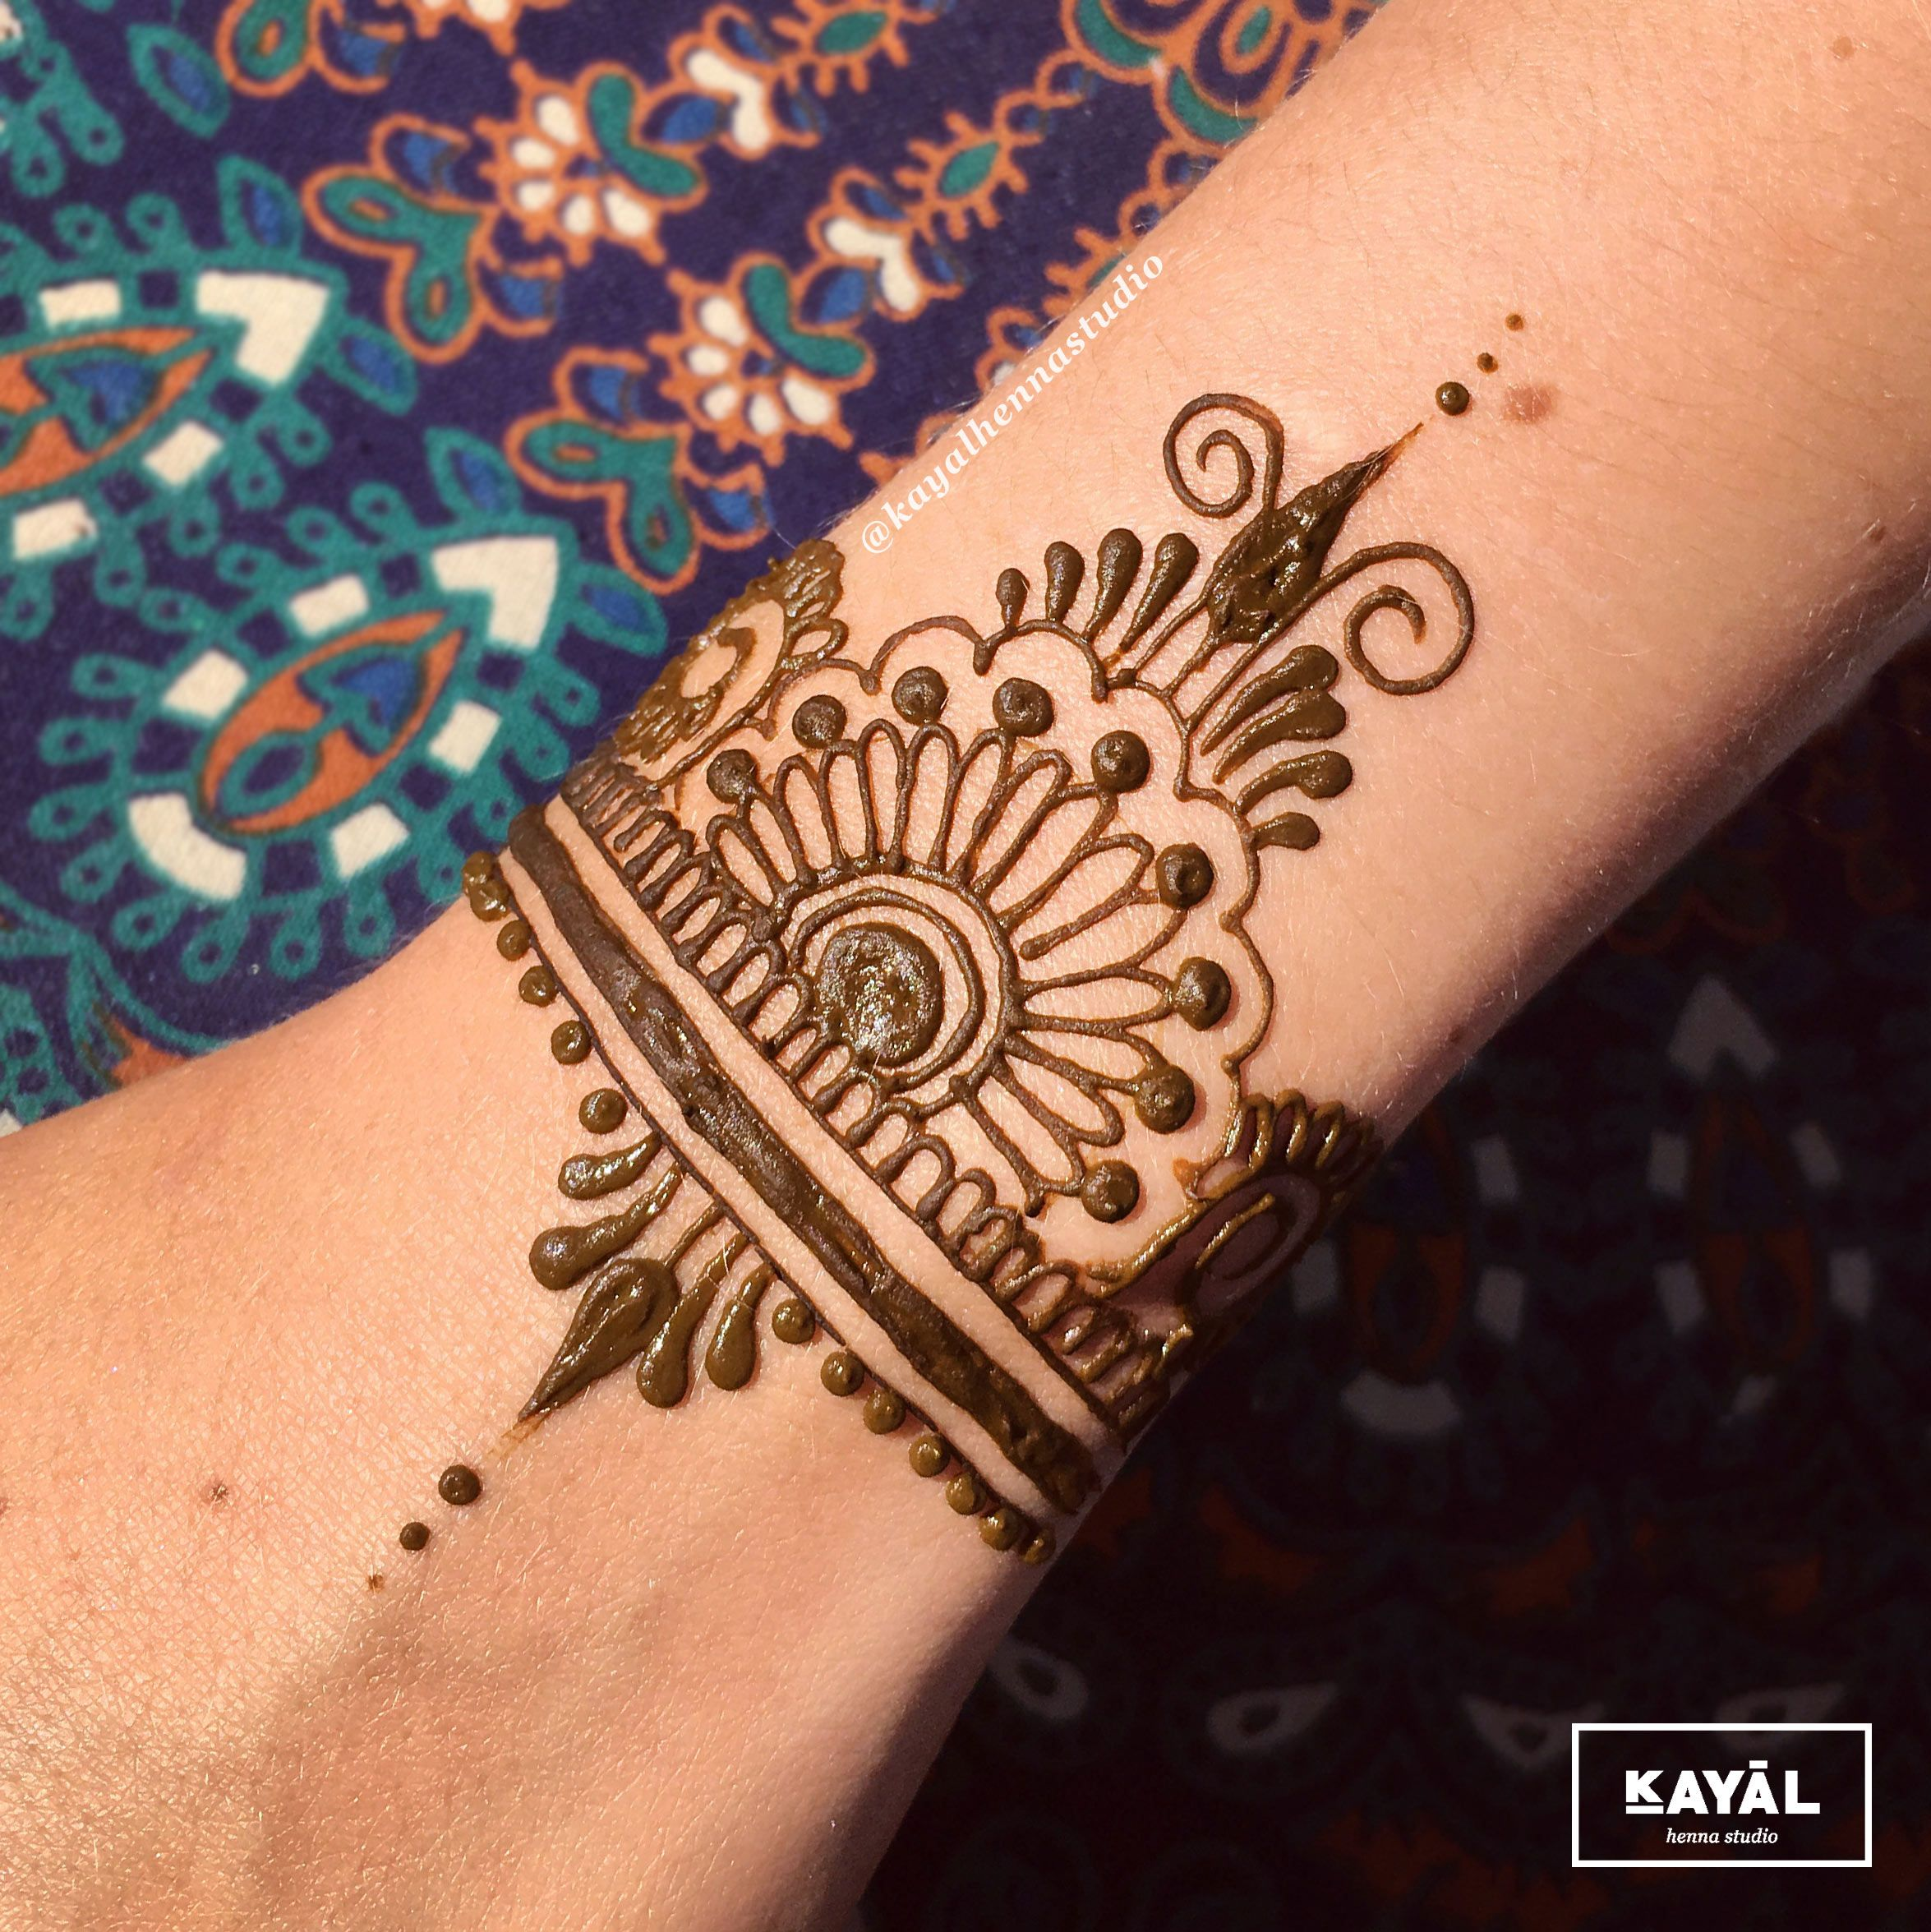 Instragram Ishi Tattoo Wrist Cuffs: Wrist Henna Tattoo By Ḵayāl Henna Studio. Instagram